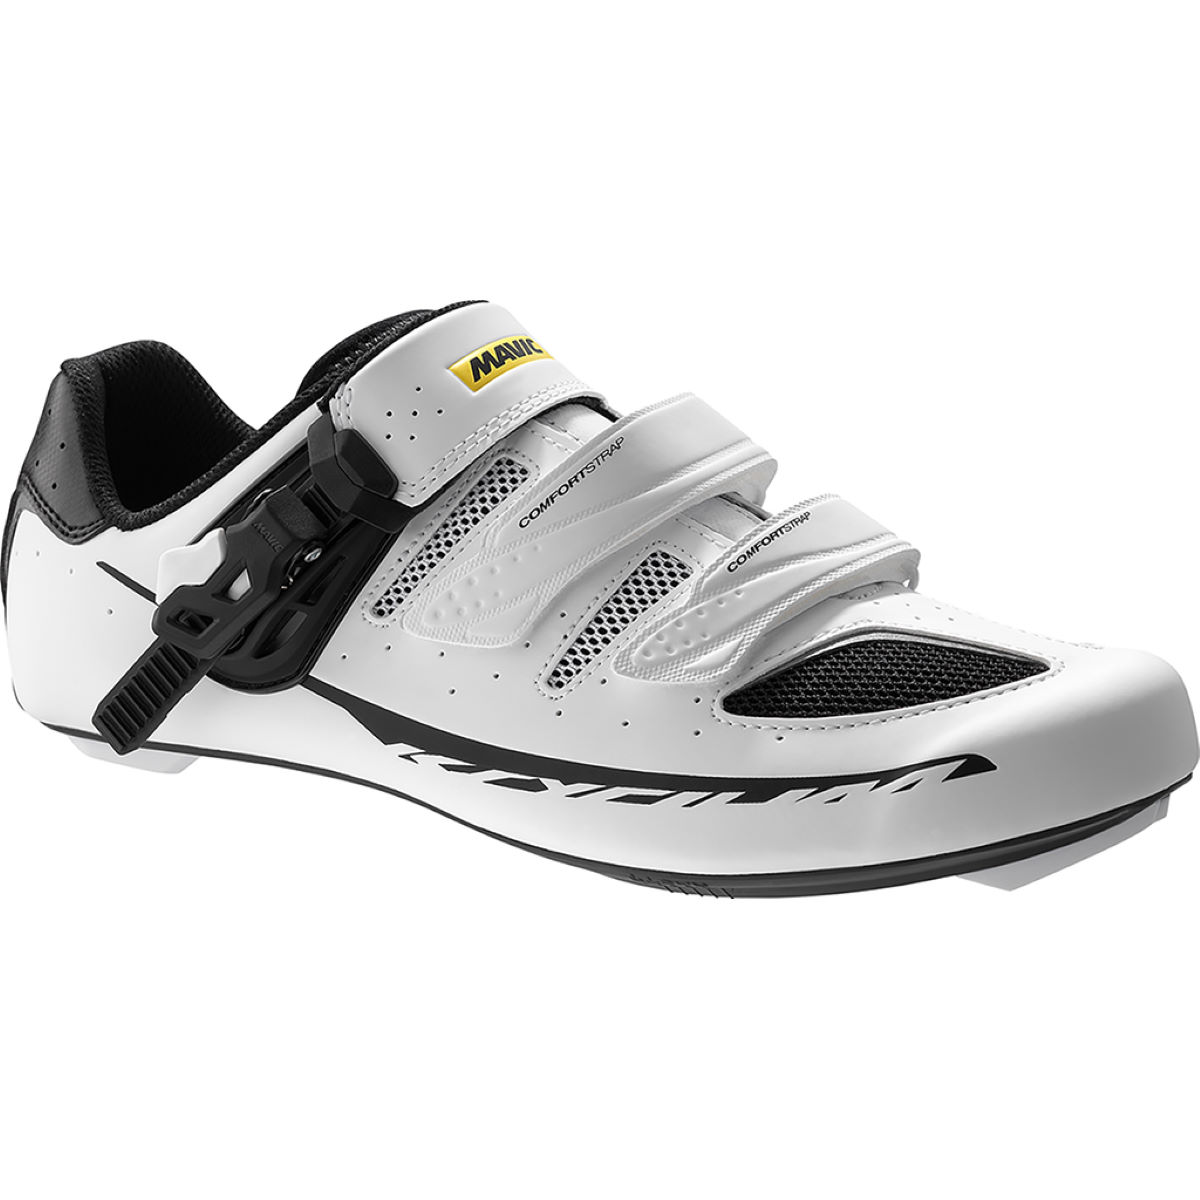 Chaussures Mavic Ksyrium Elite Maxi Fit II - 7 UK Blanc Chaussures de route